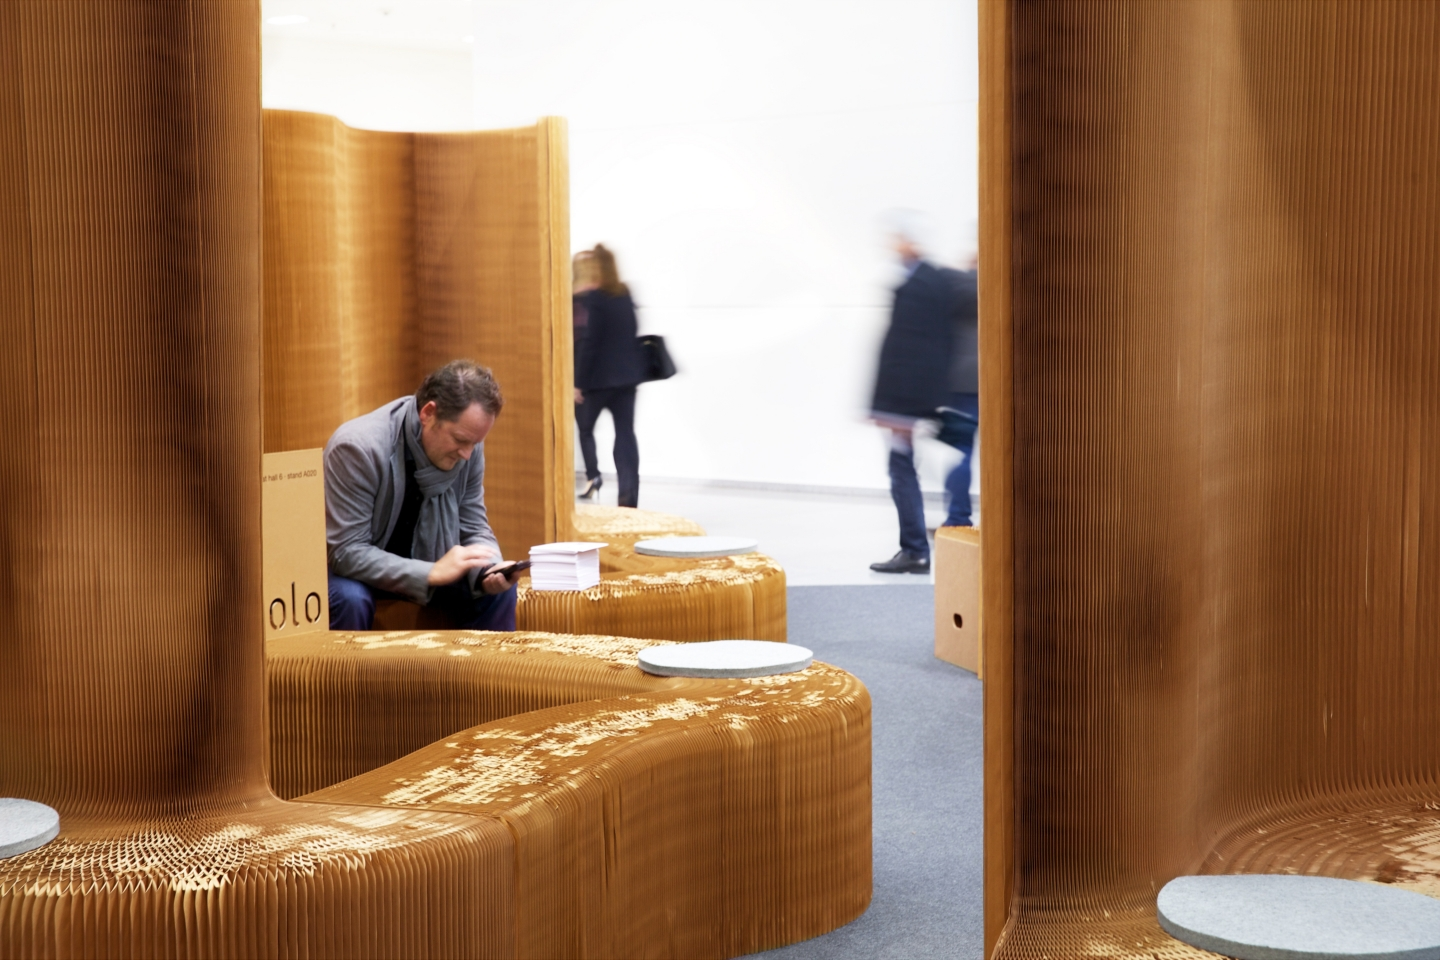 modular wall partitions, paper seating - accordion paper furniture by molo